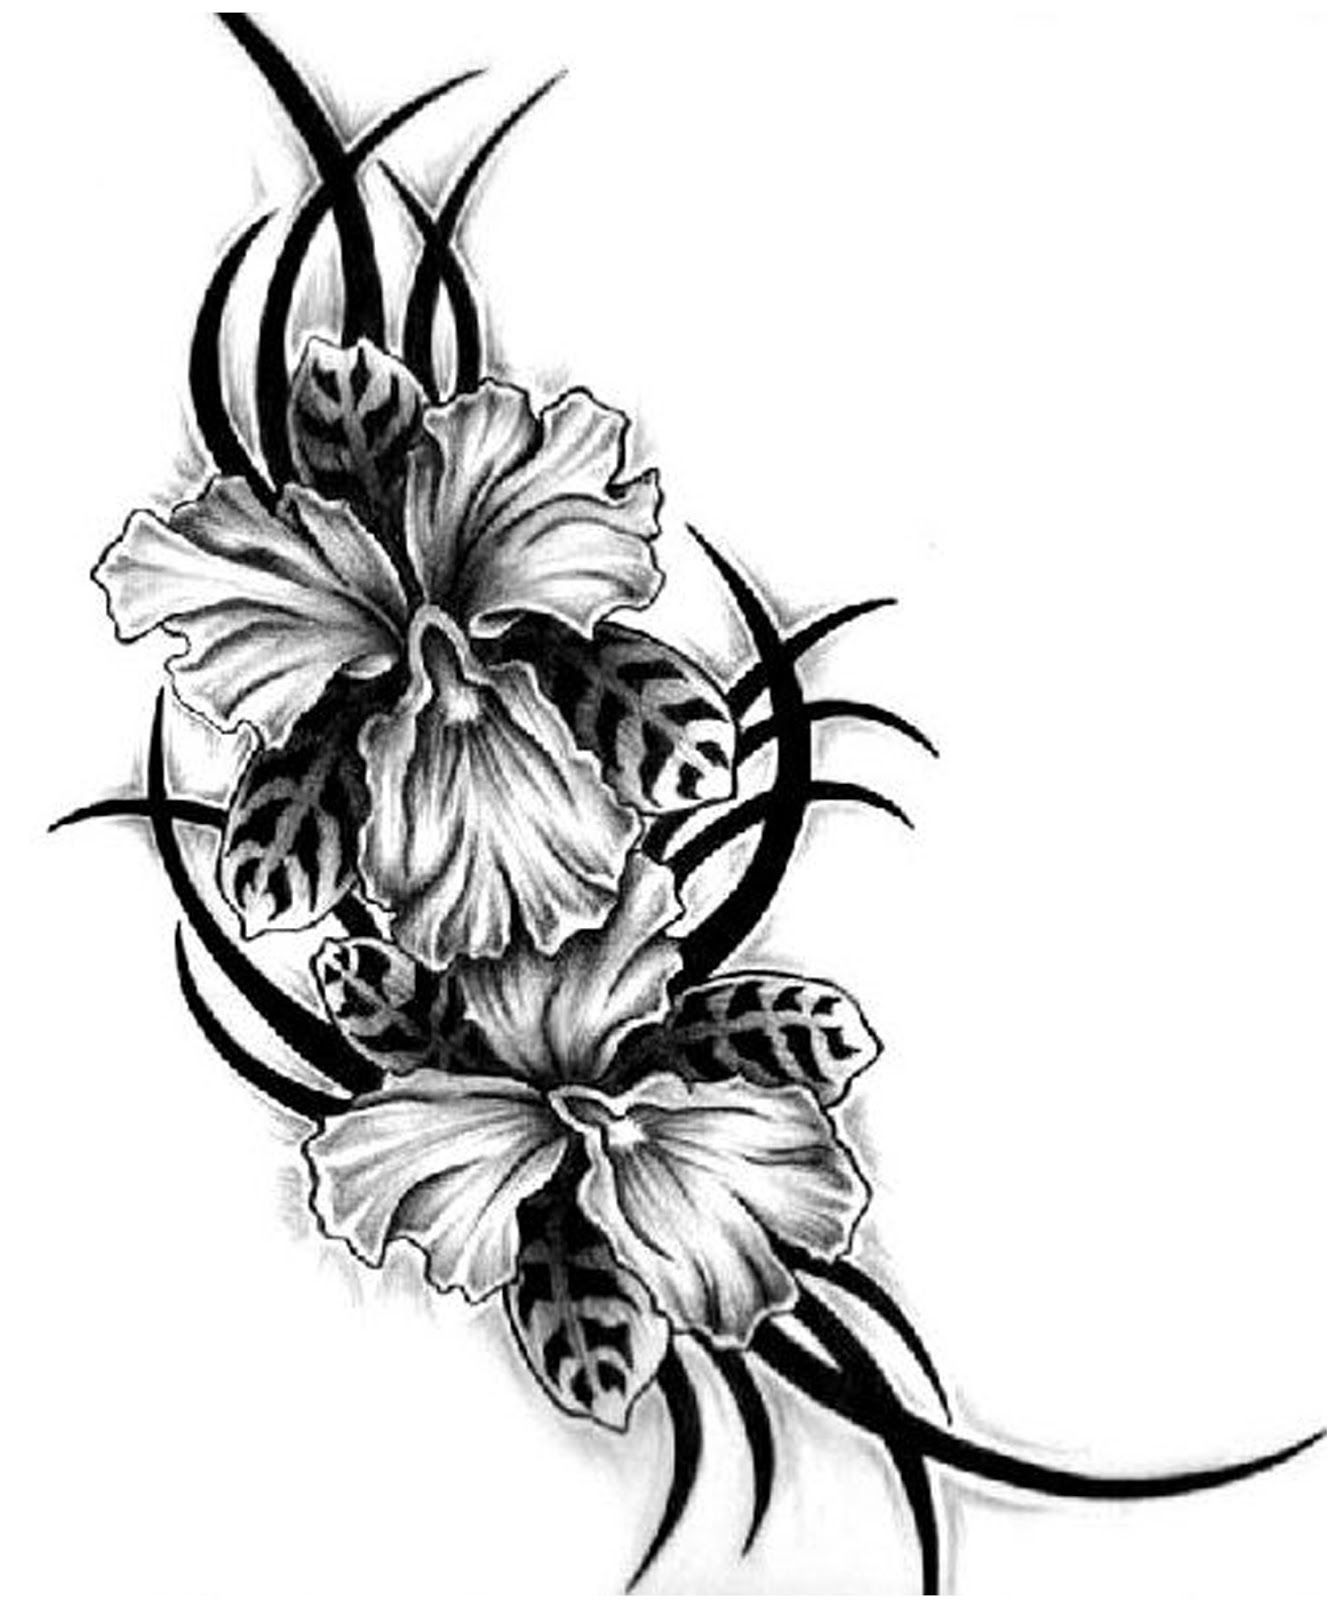 Tattoos For Women A Beautiful Pic Of An American Indian Woman Black Flower Tattoo For Girls Gir Tribal Flower Tattoos Girl Back Tattoos Girl Flower Tattoos